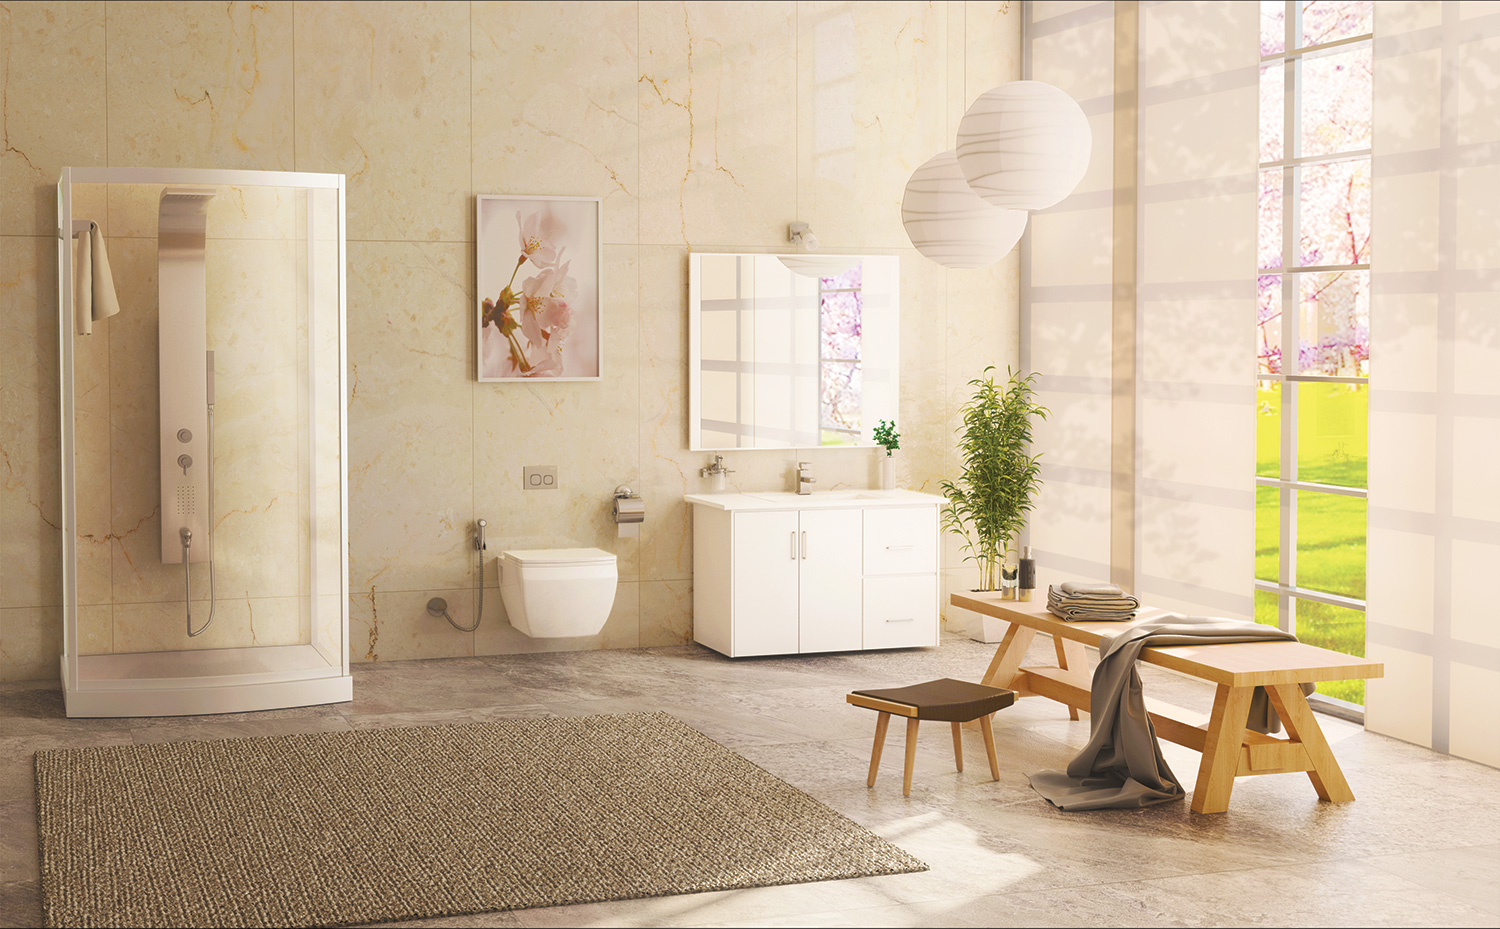 Dream Bathroom | Parryware on family room, dining room, living room, bathroom cabinet, jack and jill bathroom, laundry room,